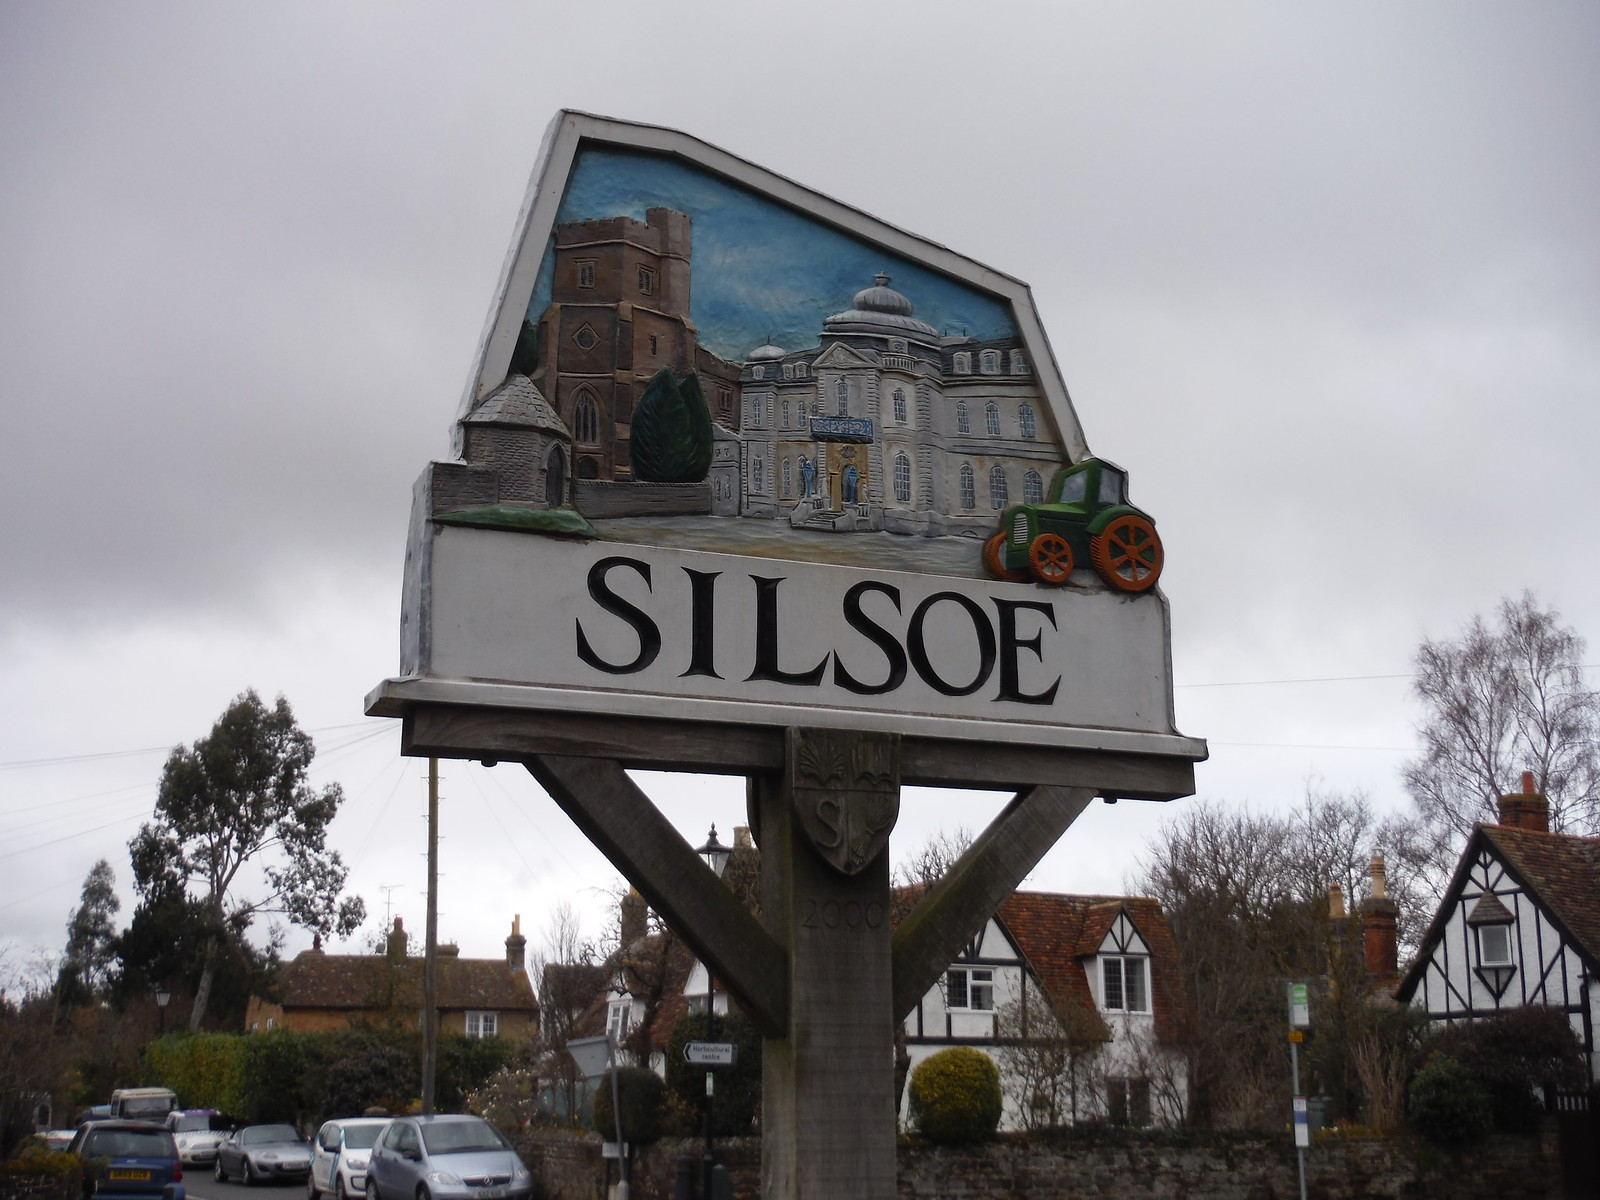 Silsoe village sign SWC Walk 231 Flitwick Circular